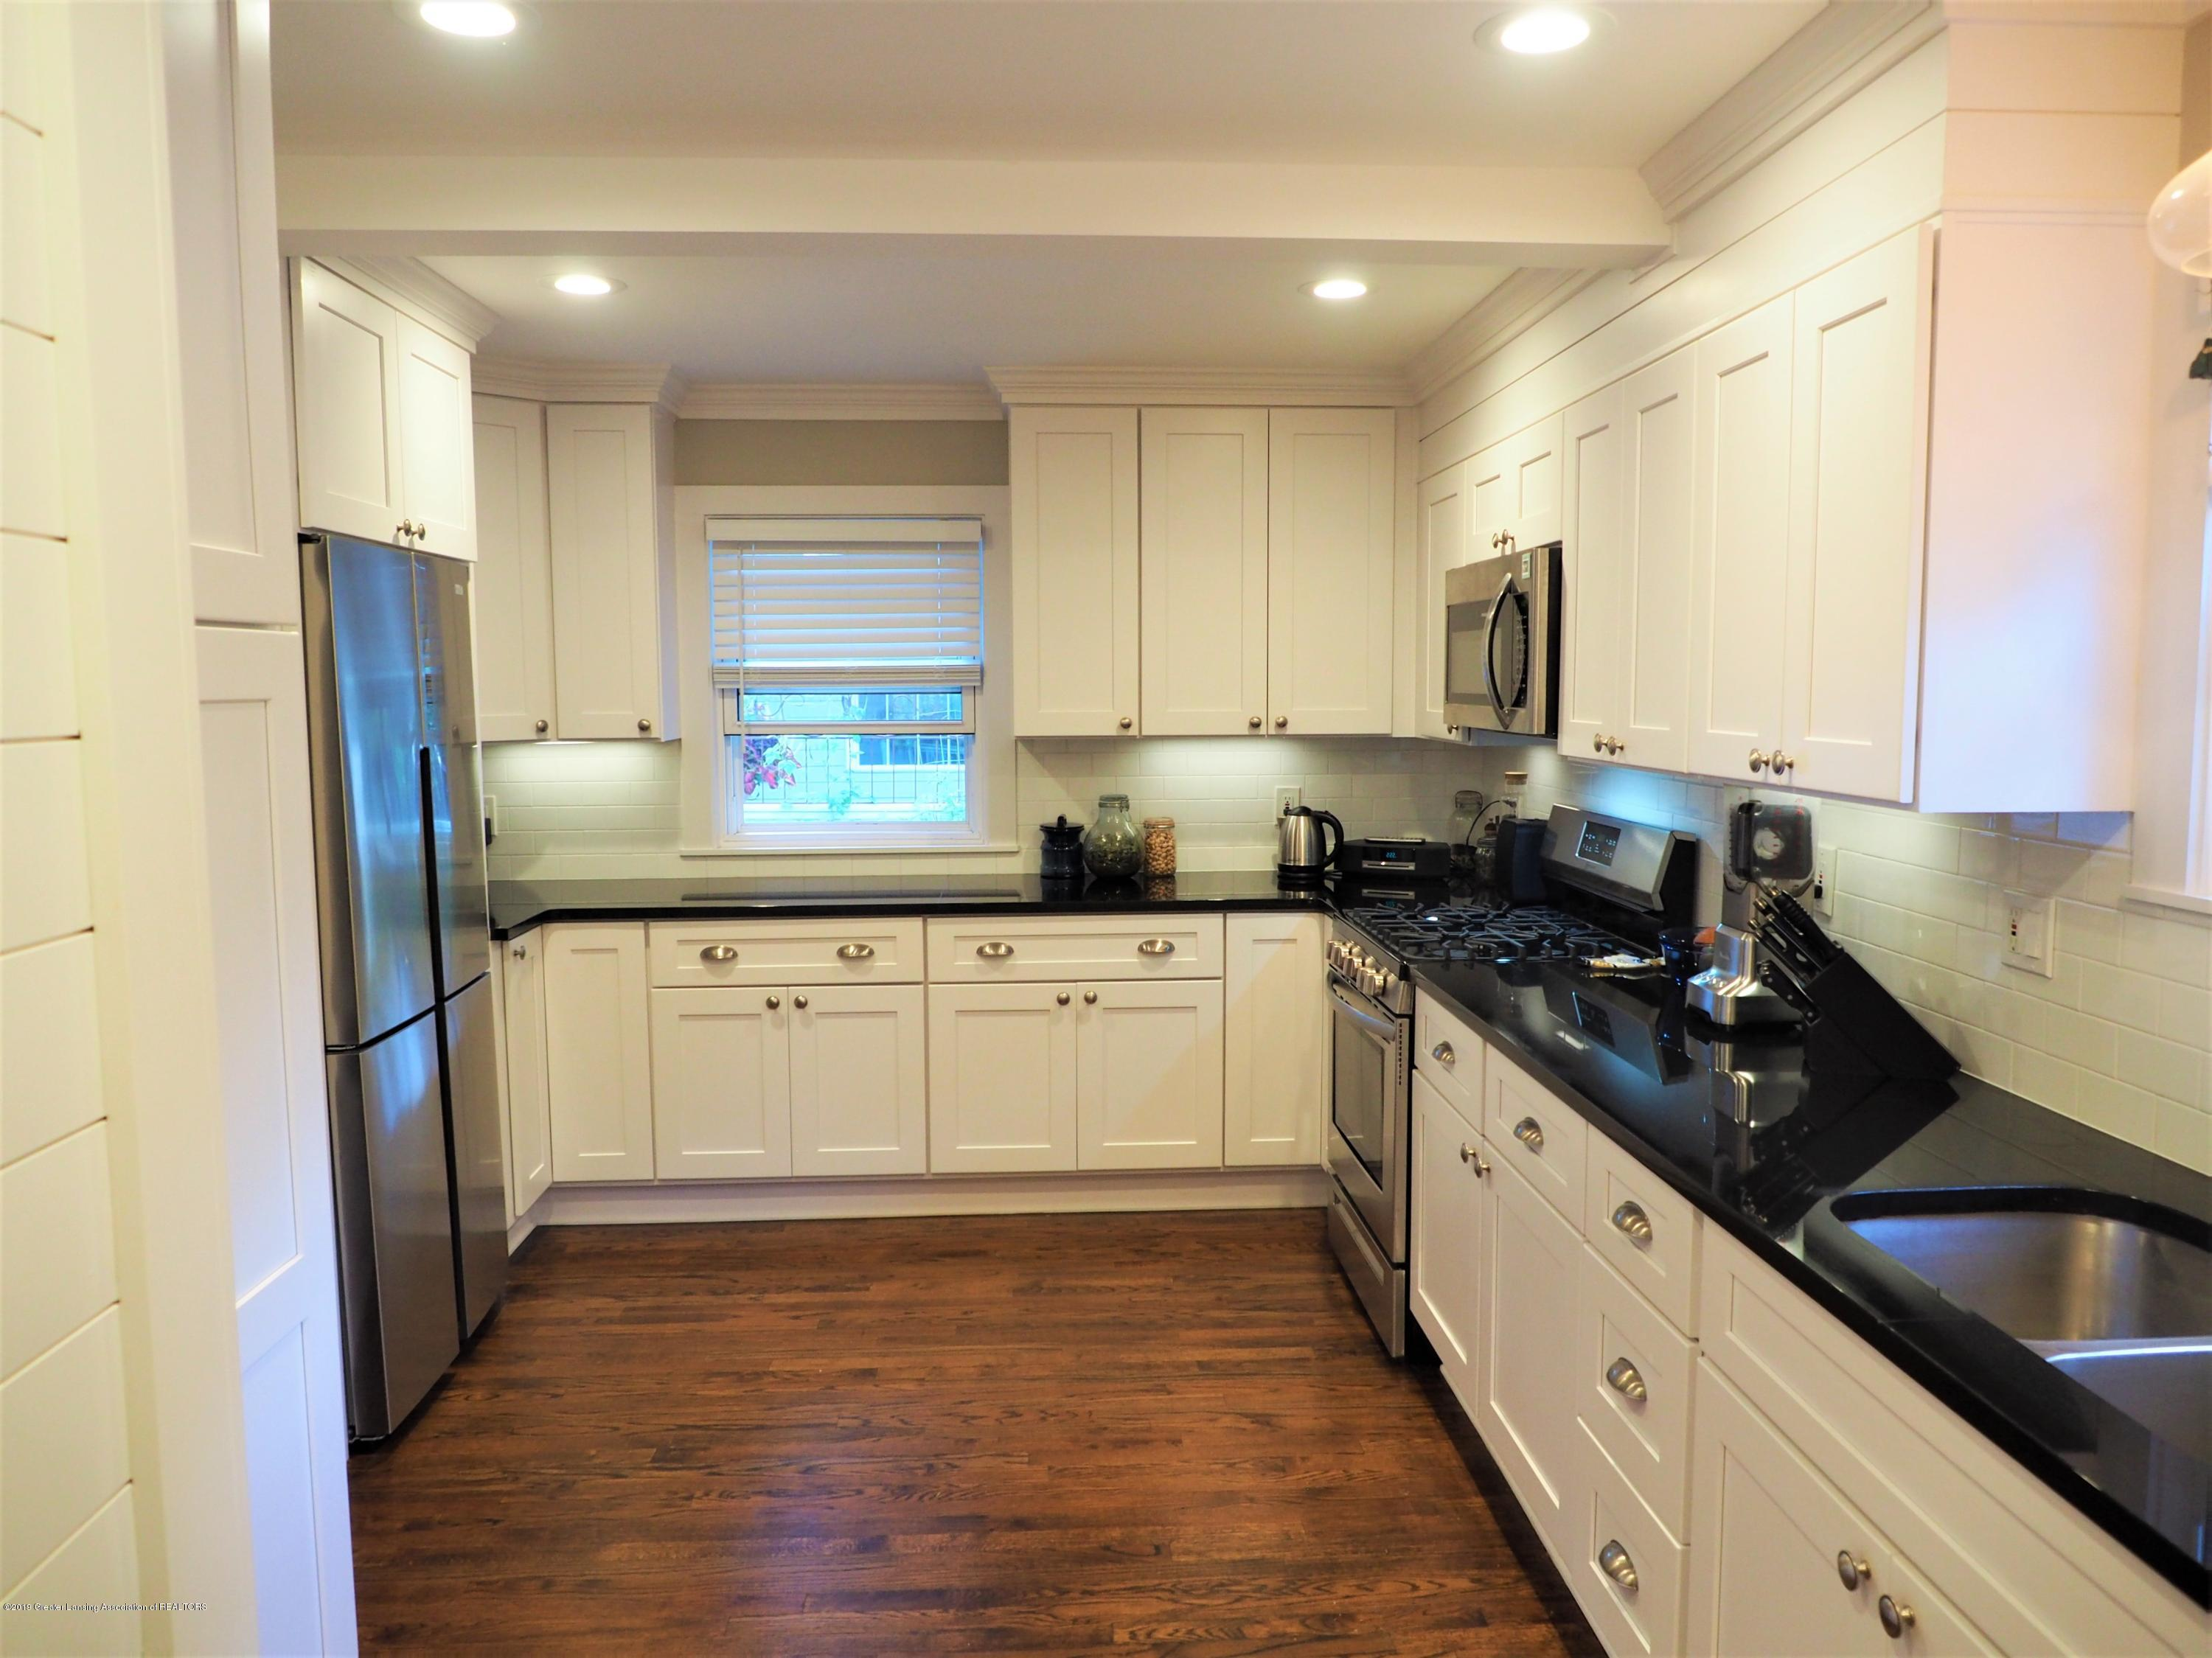 343 Cowley Ave - P1011430 - 13